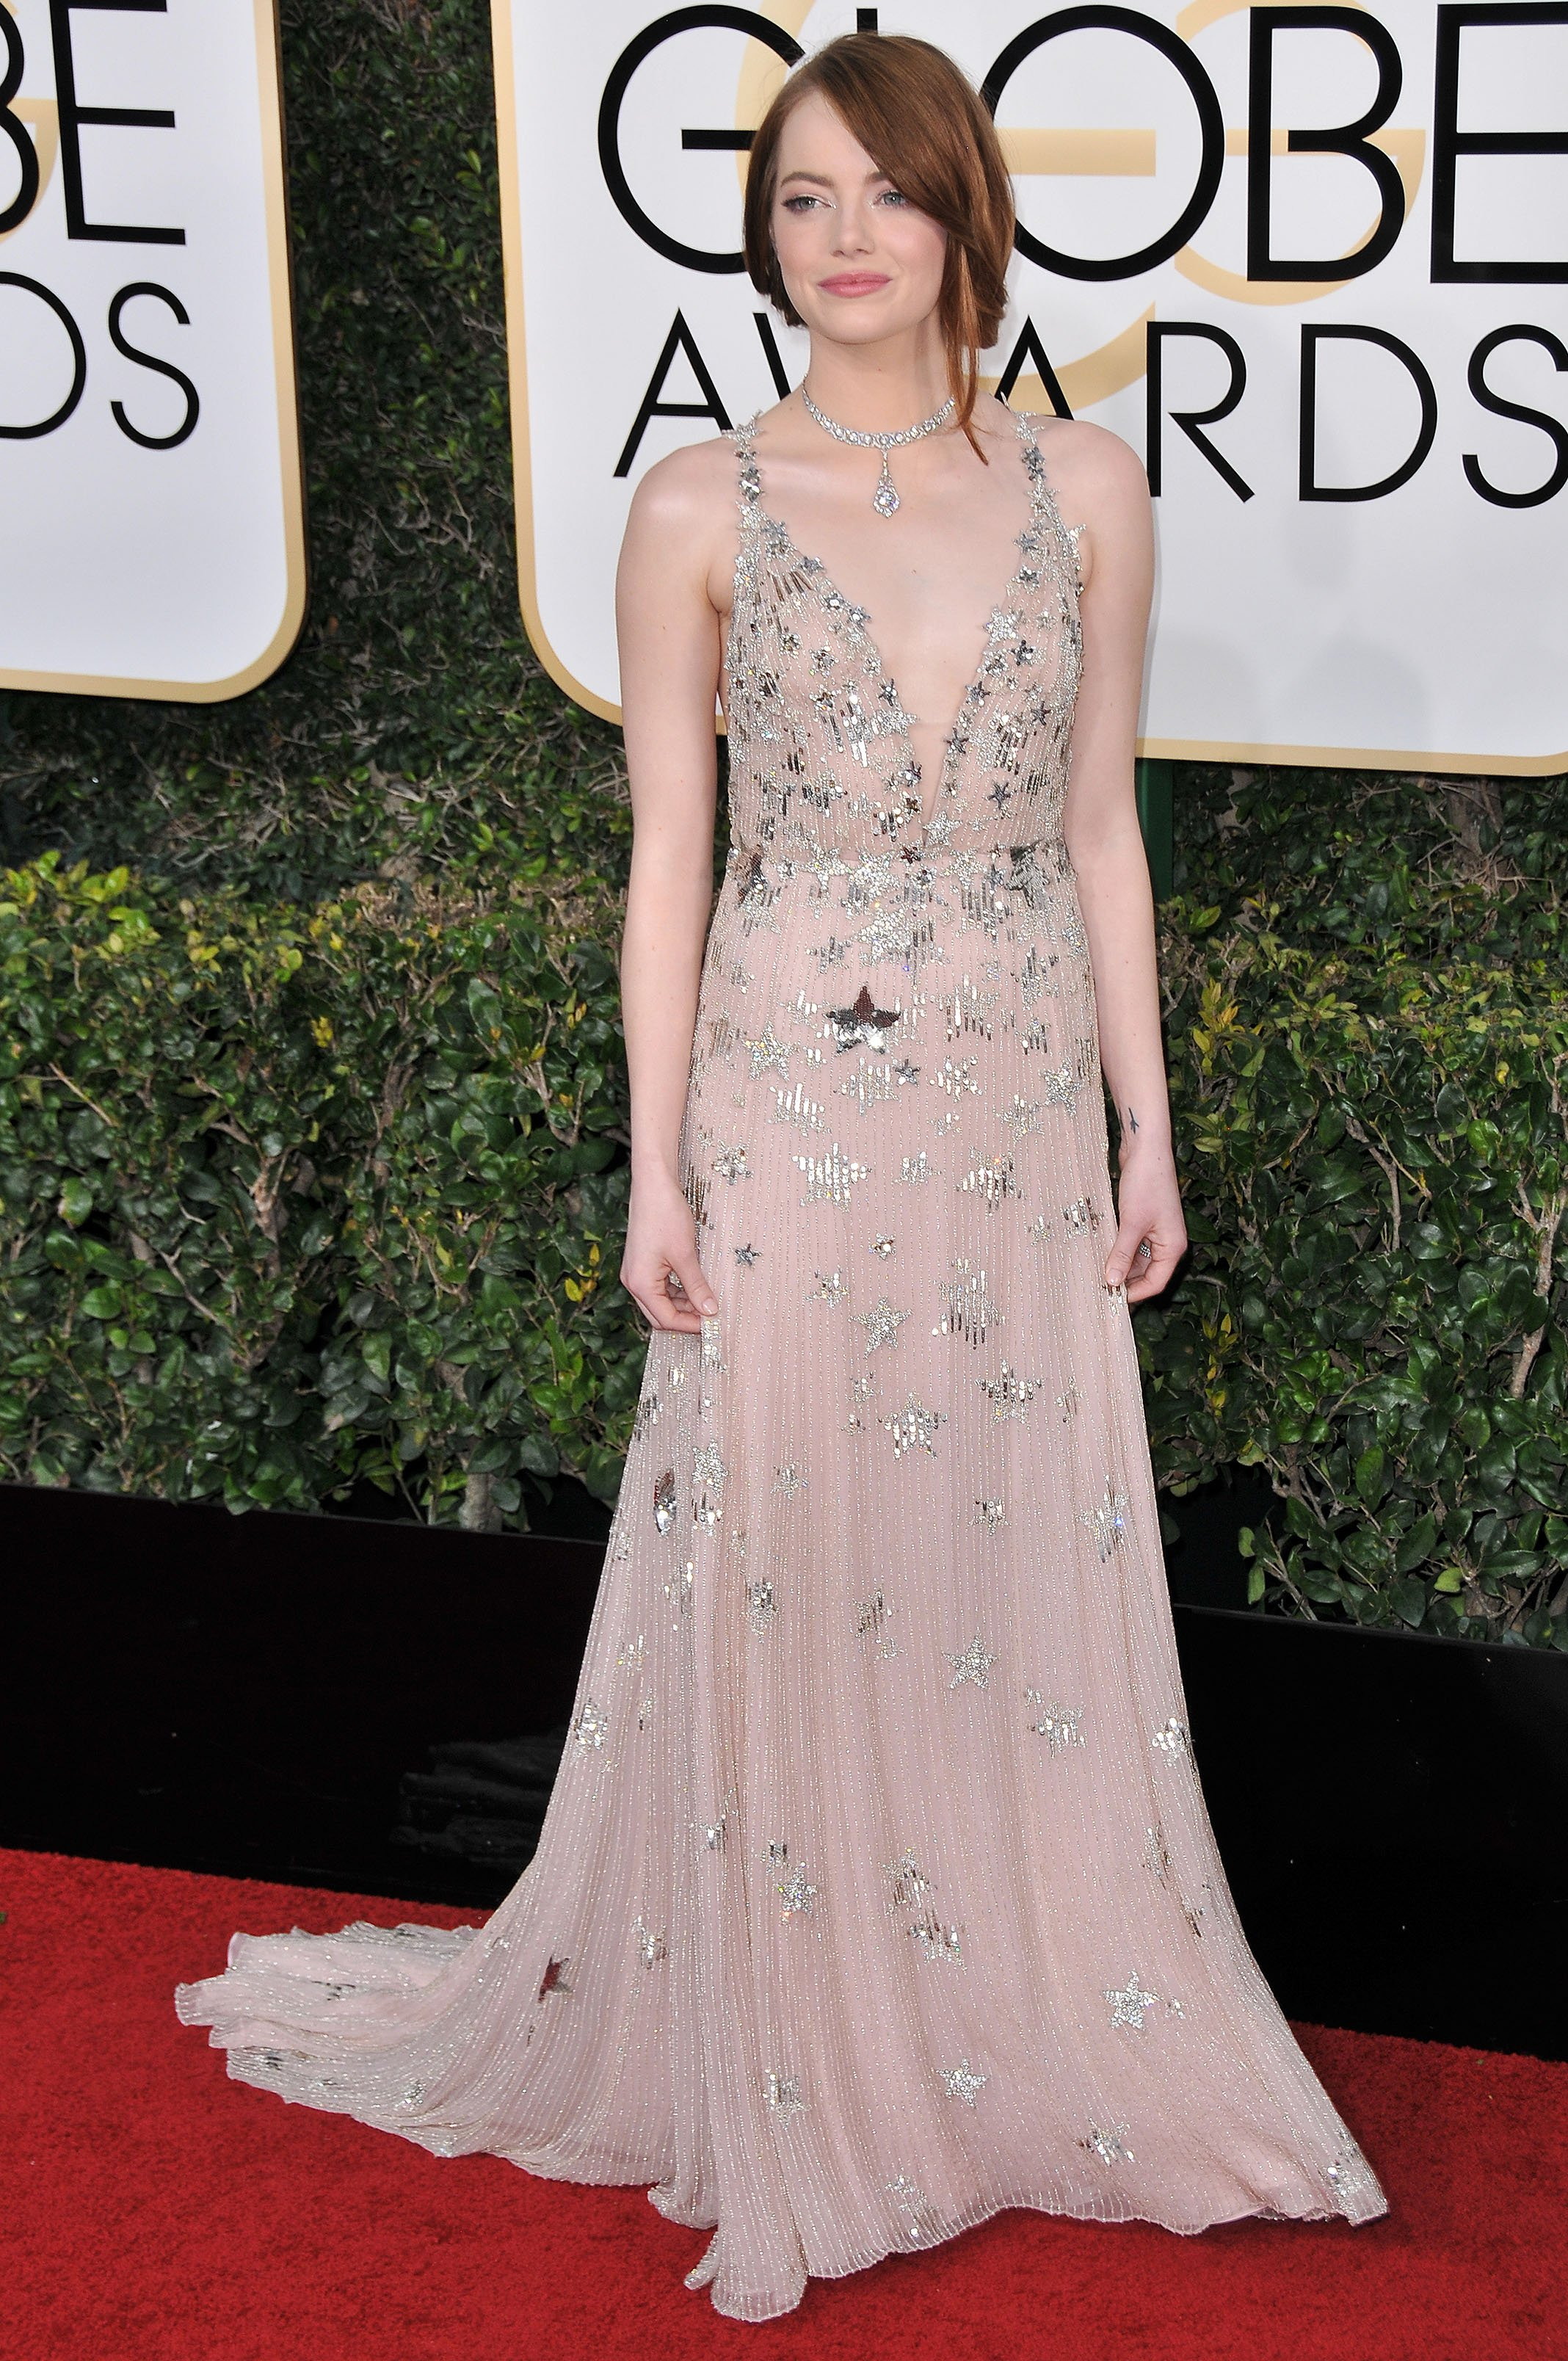 Emma Stone at the 74th Annual Golden Globe Awards held at The Beverly Hilton Hotel in Beverly Hills, CA , USA , January 8, 2017., Image: 310509535, License: Rights-managed, Restrictions: NO ITALY, GERMANY, BENELUX, USA or AUSTRALIA- Fee Payable Upon Reproduction - For queries contact Photoshot - sales@avalon.red  London: +44 (0) 20 7421 6000  Los Angeles: +1 (310) 822 0419  Berlin: +49 (0) 30 76 212 251, Model Release: no, Credit line: Profimedia, Uppa entertainment